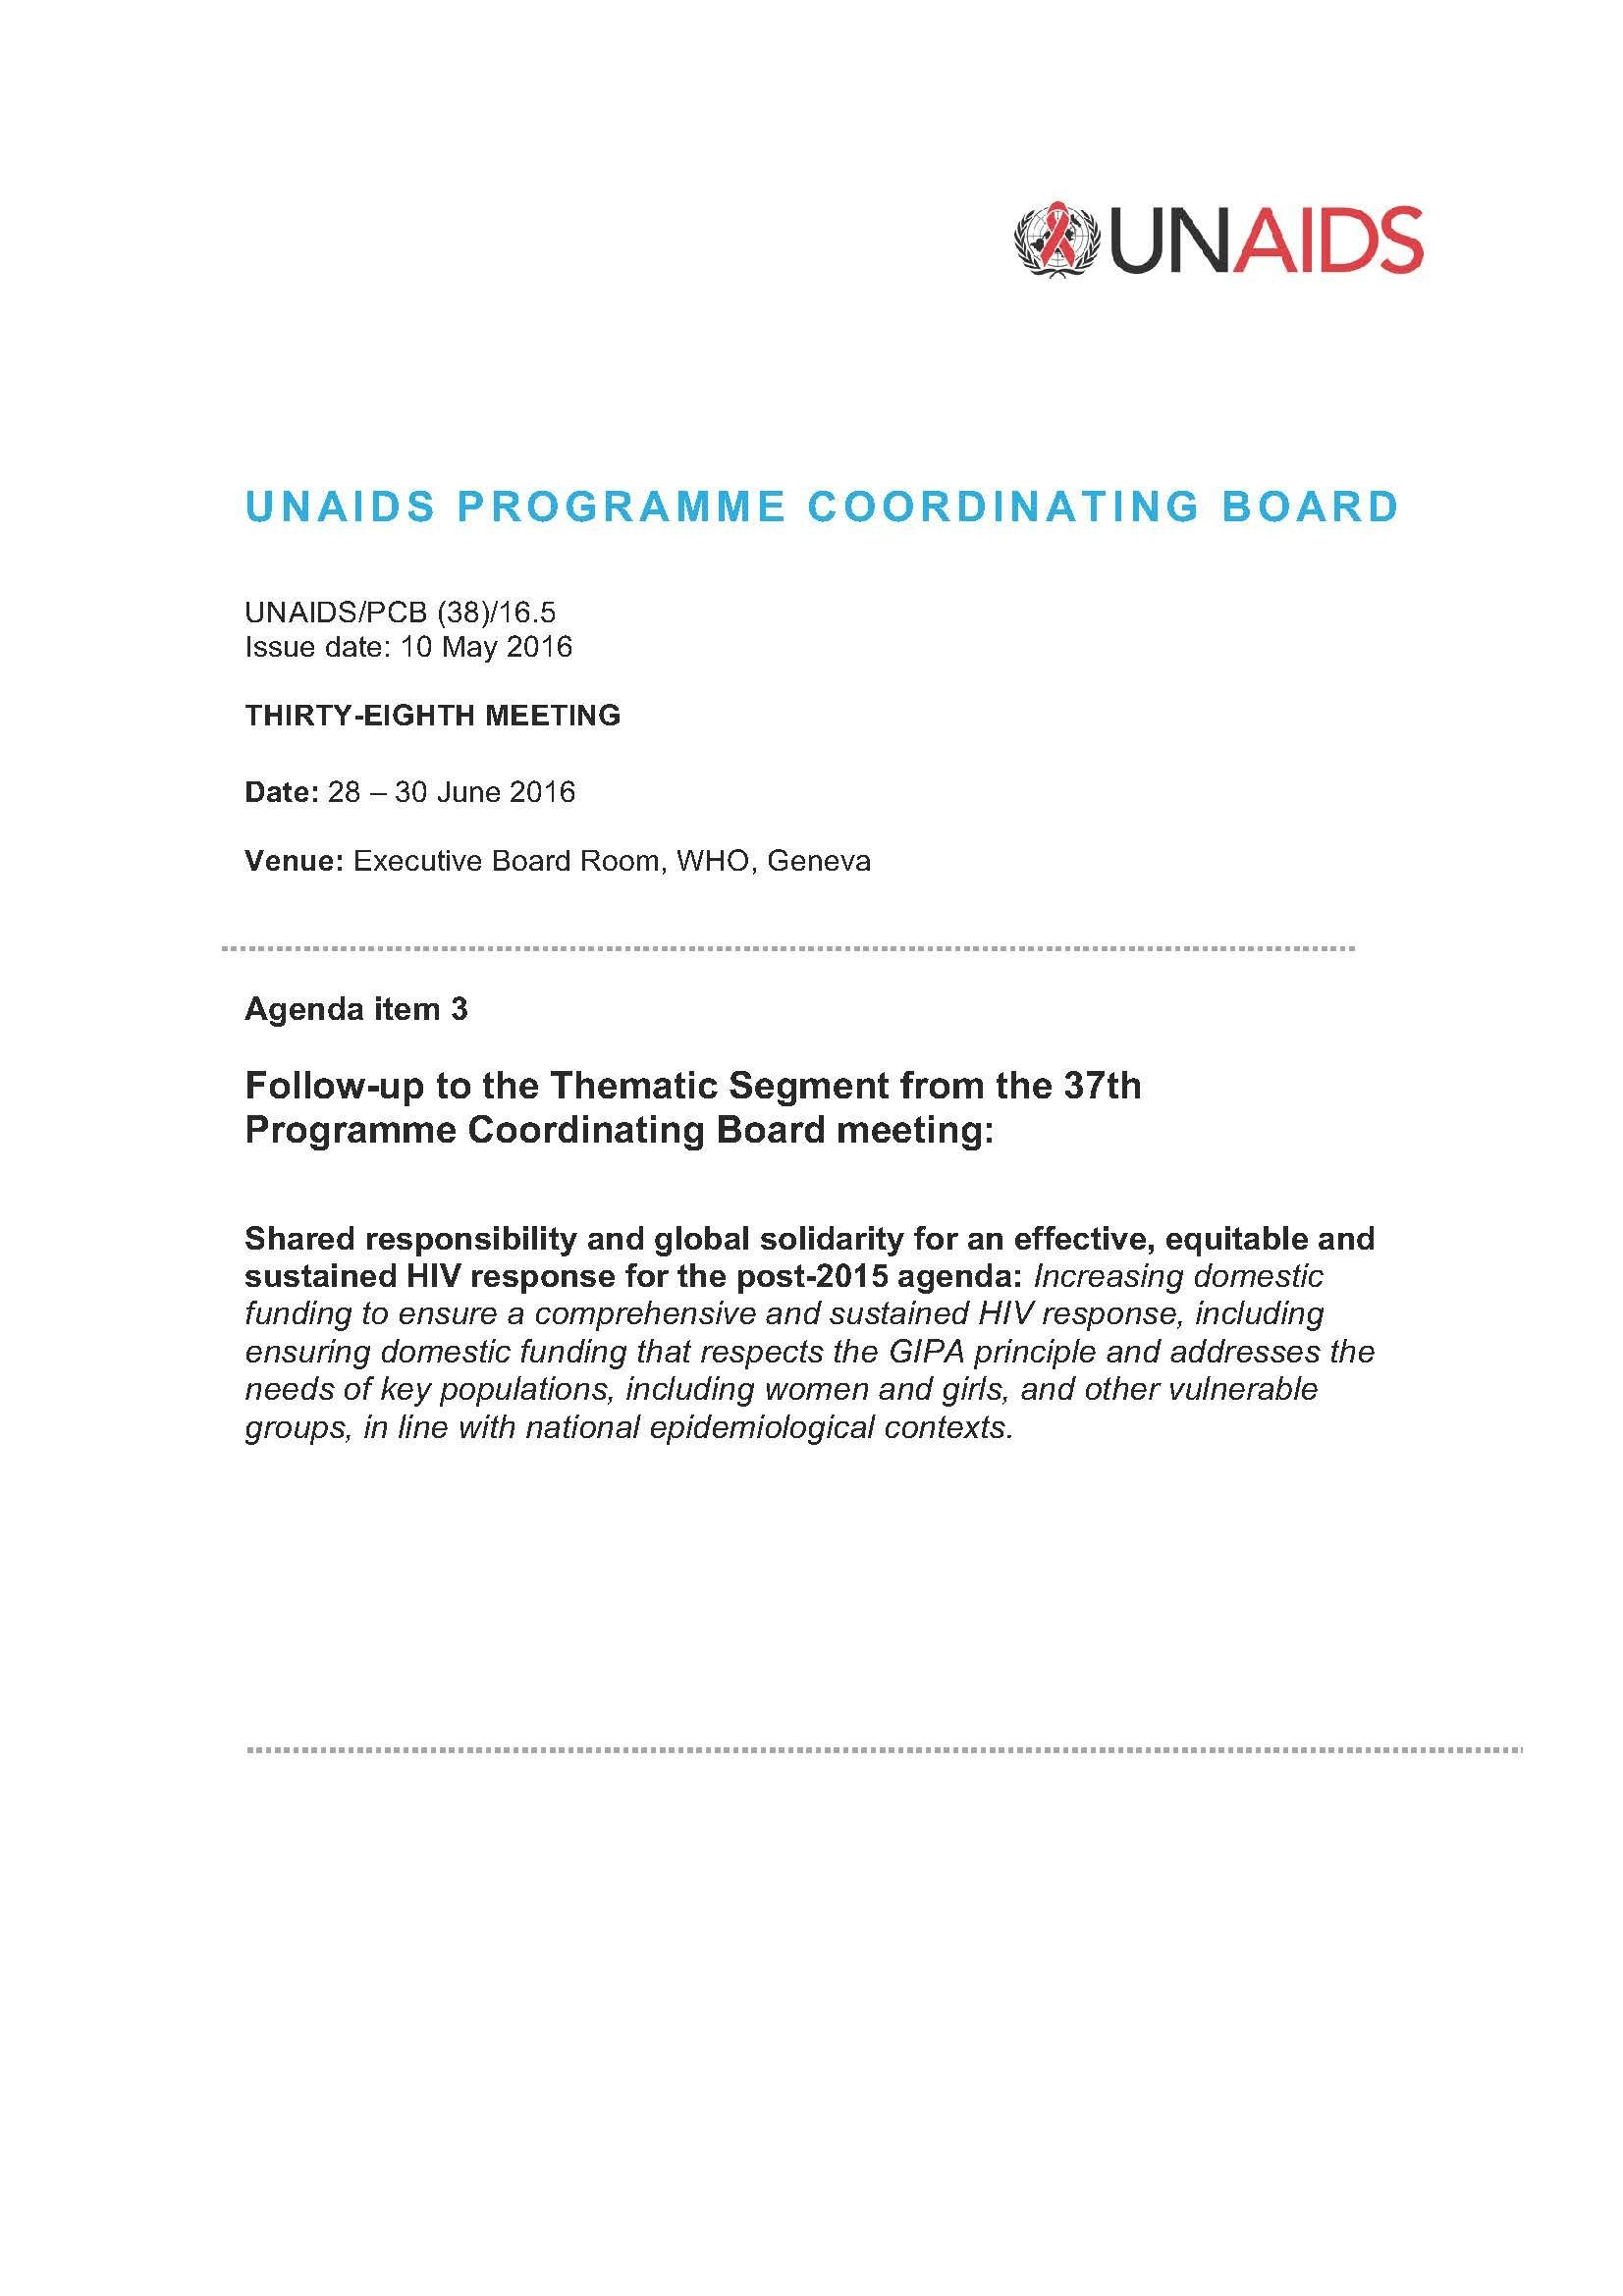 Agenda item 3 Follow-up to the Thematic Segment from the